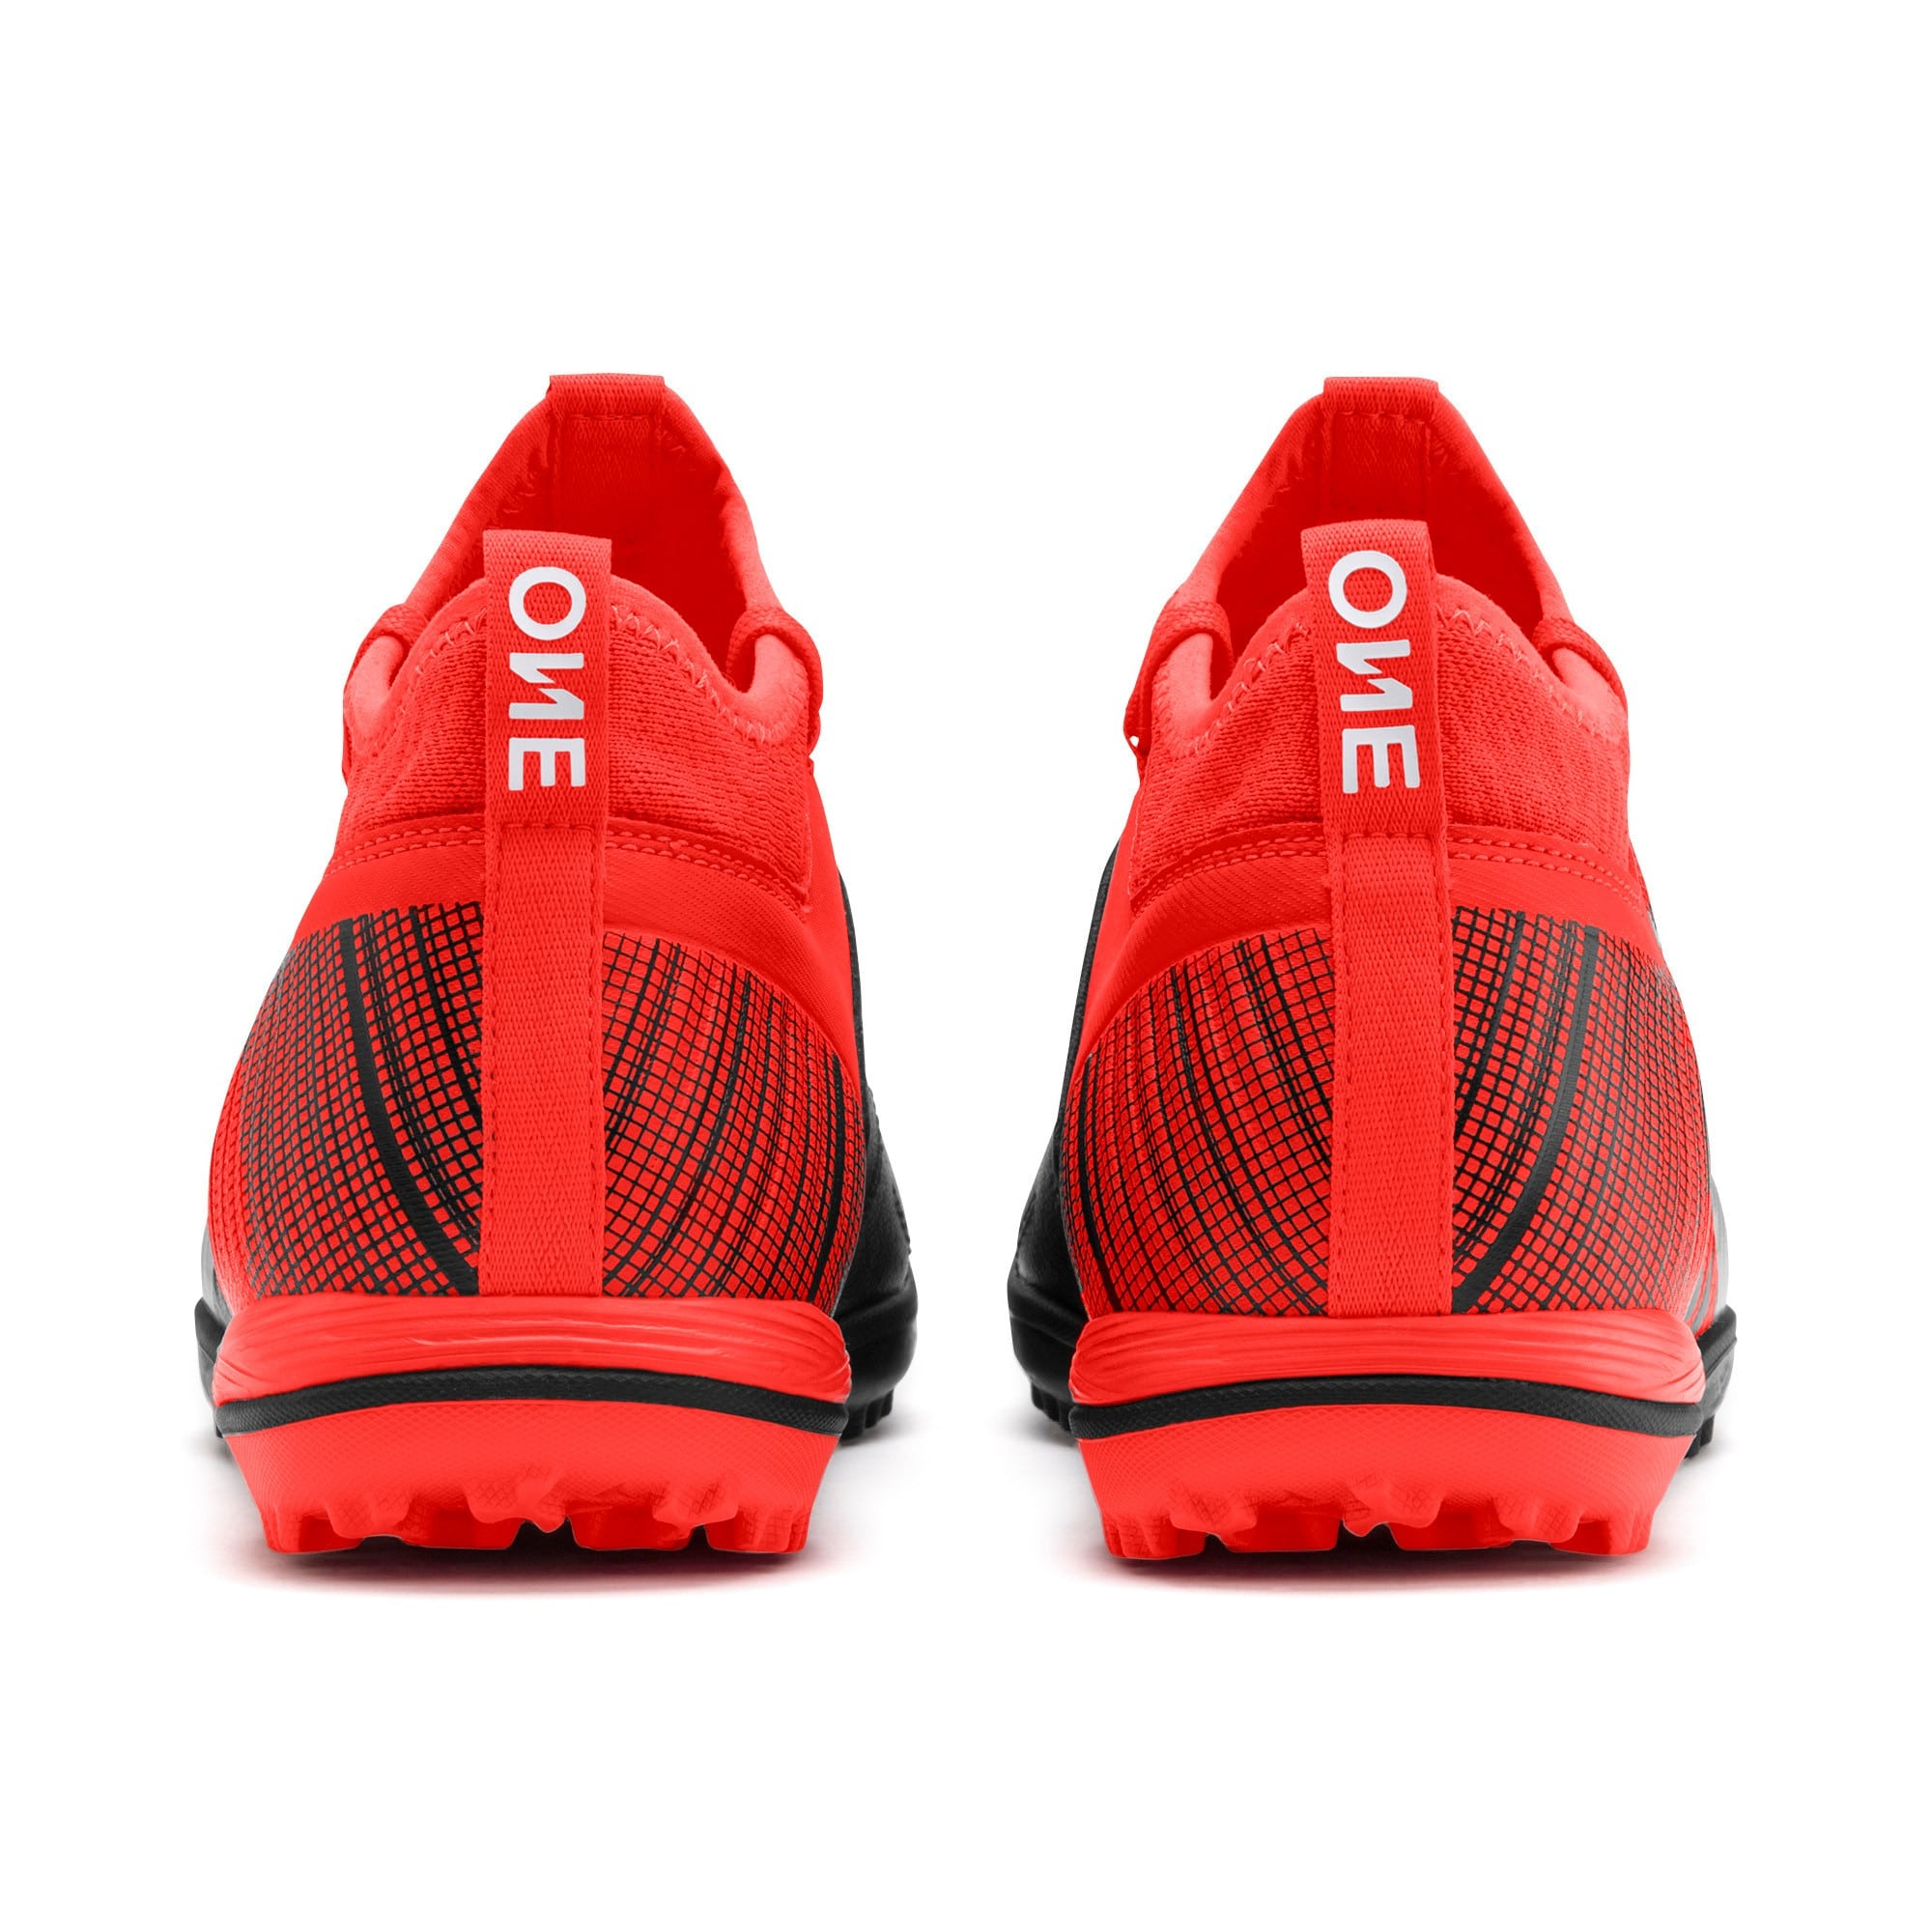 Elegant Shape Nike Air Max 97 Playstation Silver Red White Black Men's Casual Trainers Running Shoes DC005271